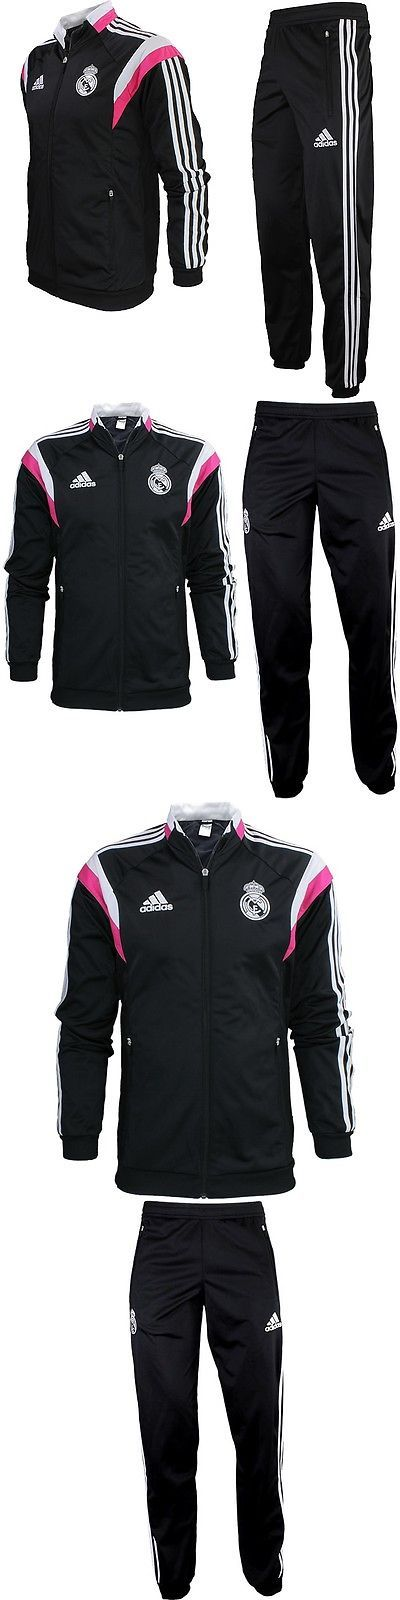 Track Suits 59339: Adidas Real Madrid Pr Mens Track Suit Joggingsuit Sports Suit New -> BUY IT NOW ONLY: $93.19 on eBay!